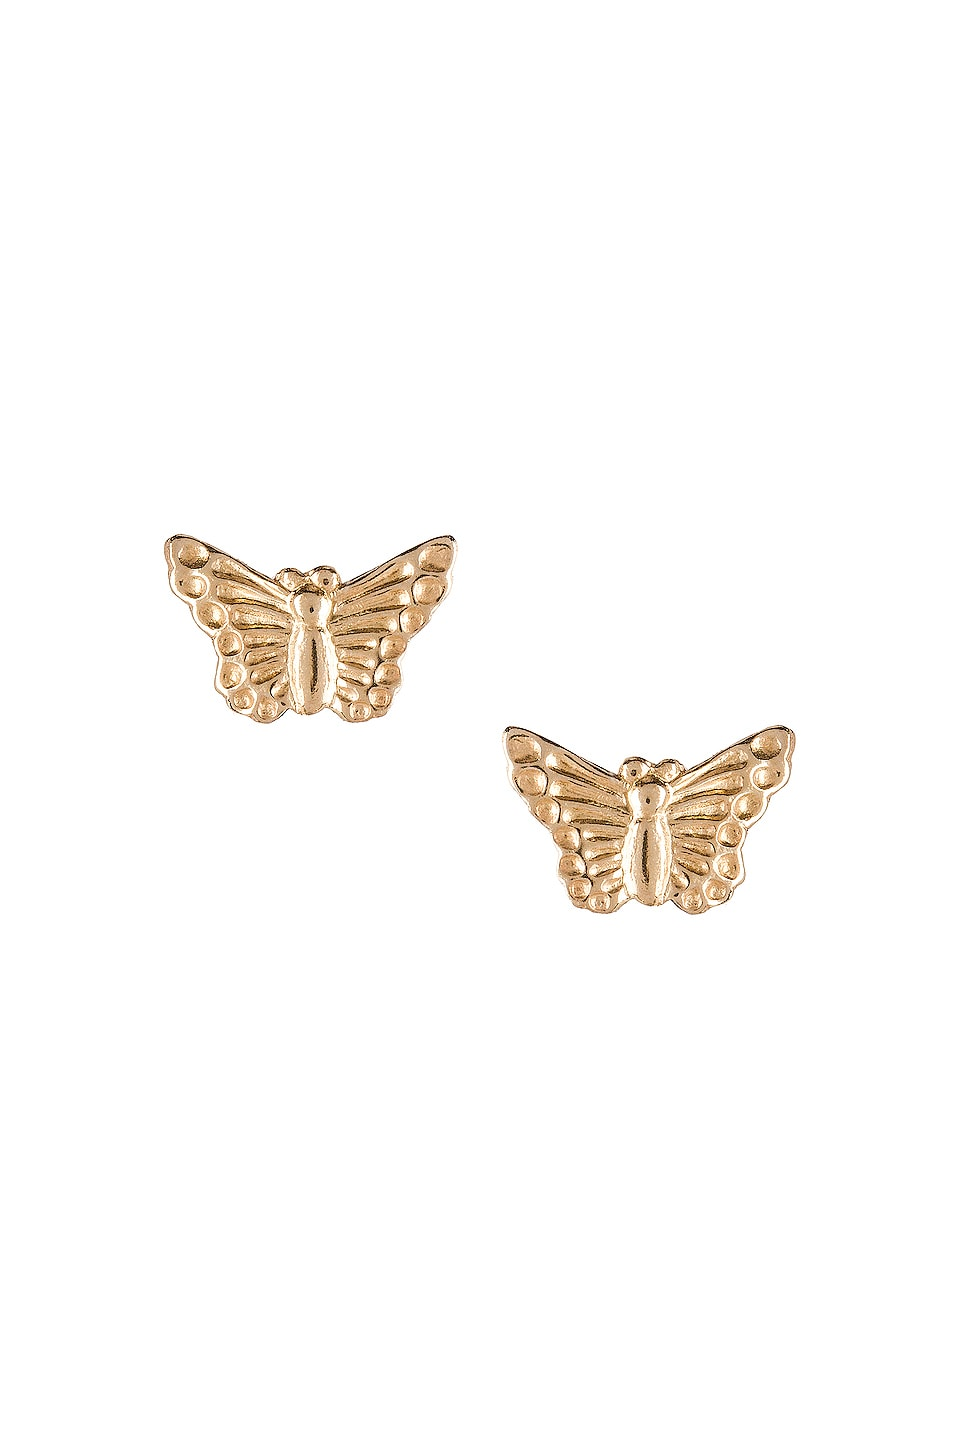 Natalie B Jewelry Butterfly Studs in Gold